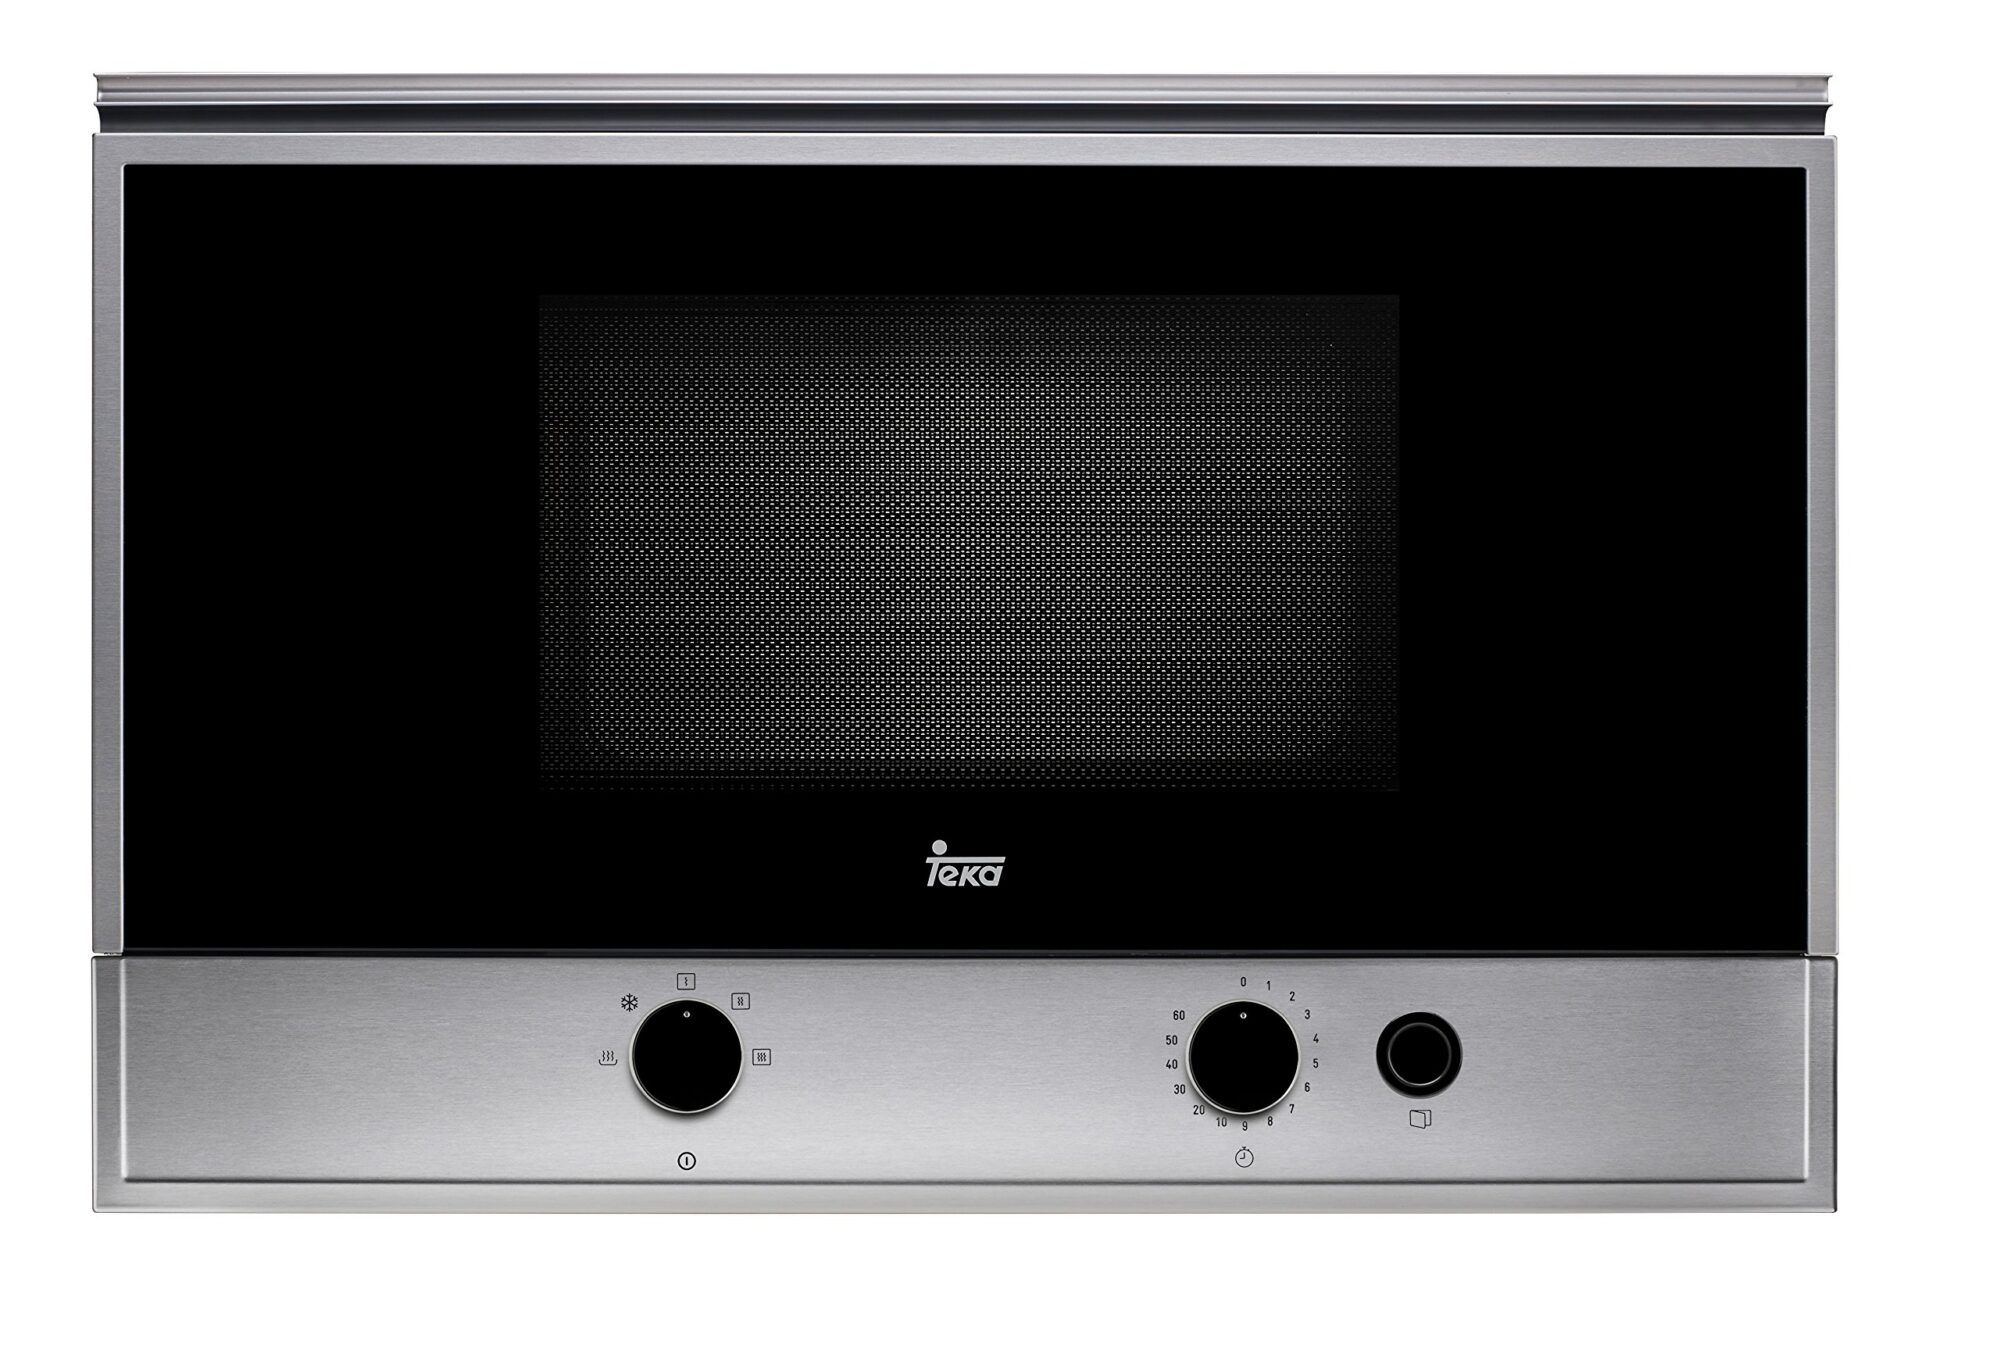 teka ms 622 bi integrado 22l 850w negro acero inoxidable